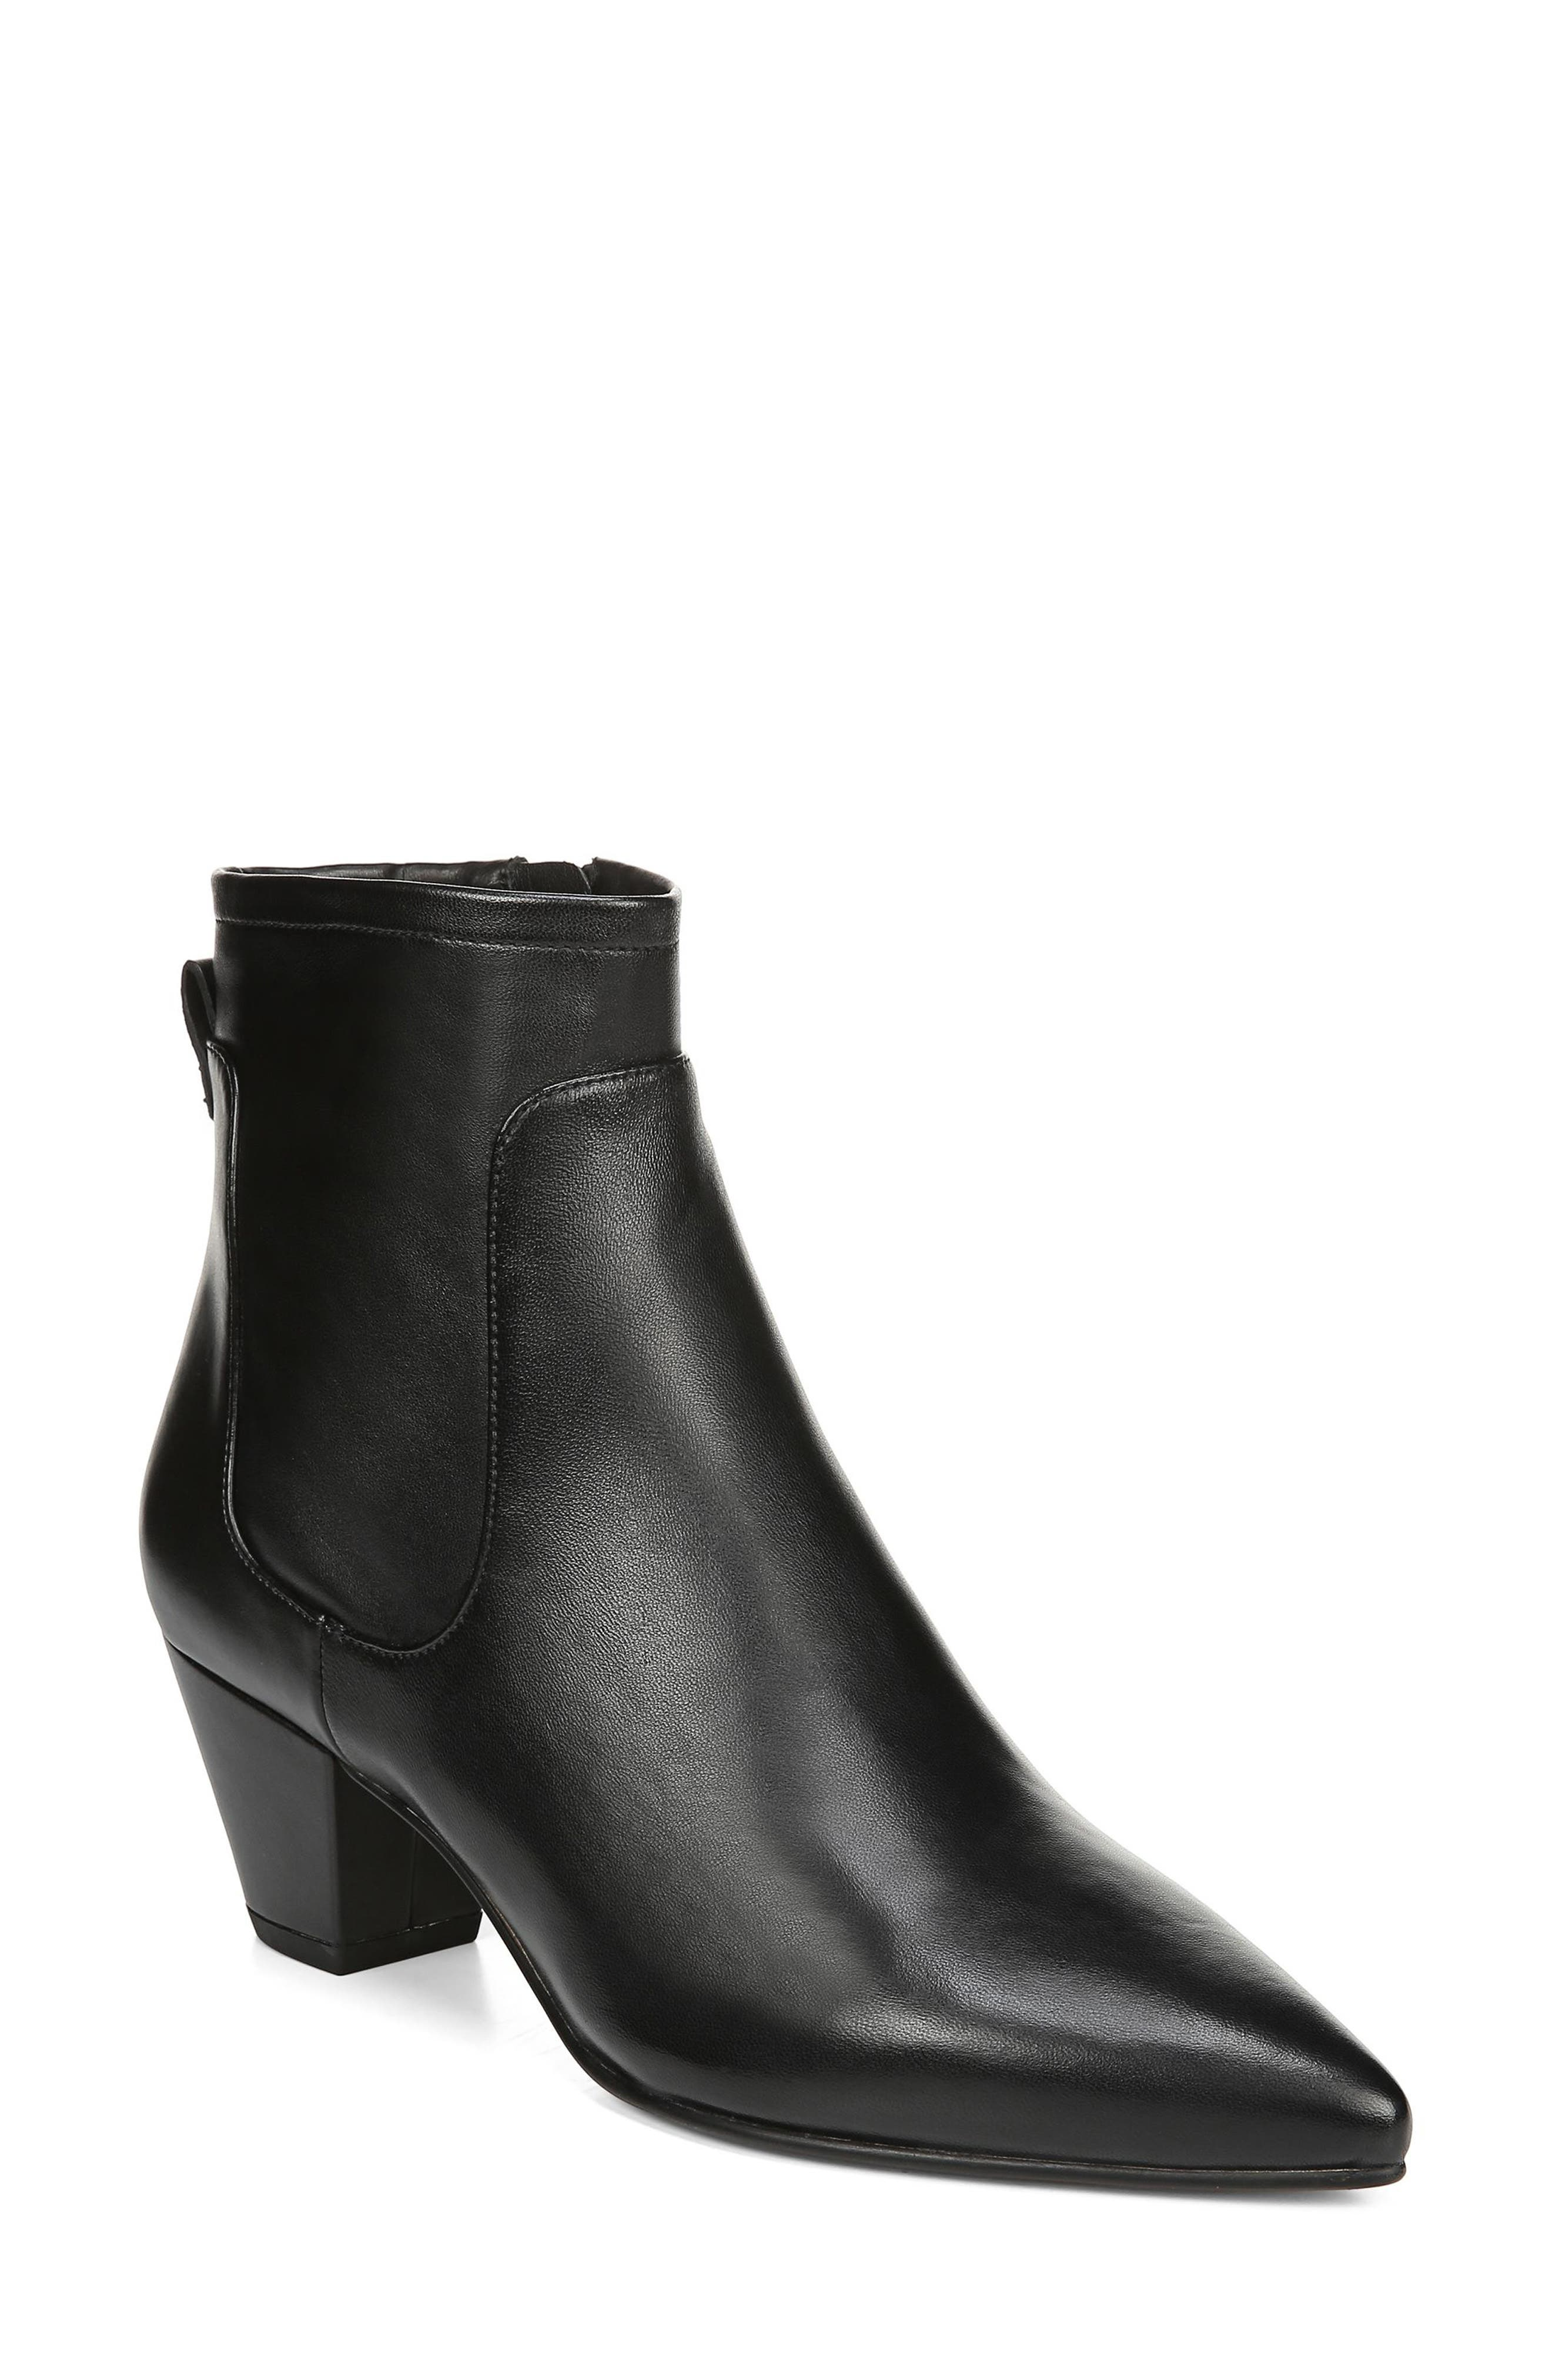 Karlee Bootie,                             Main thumbnail 1, color,                             BLACK LEATHER